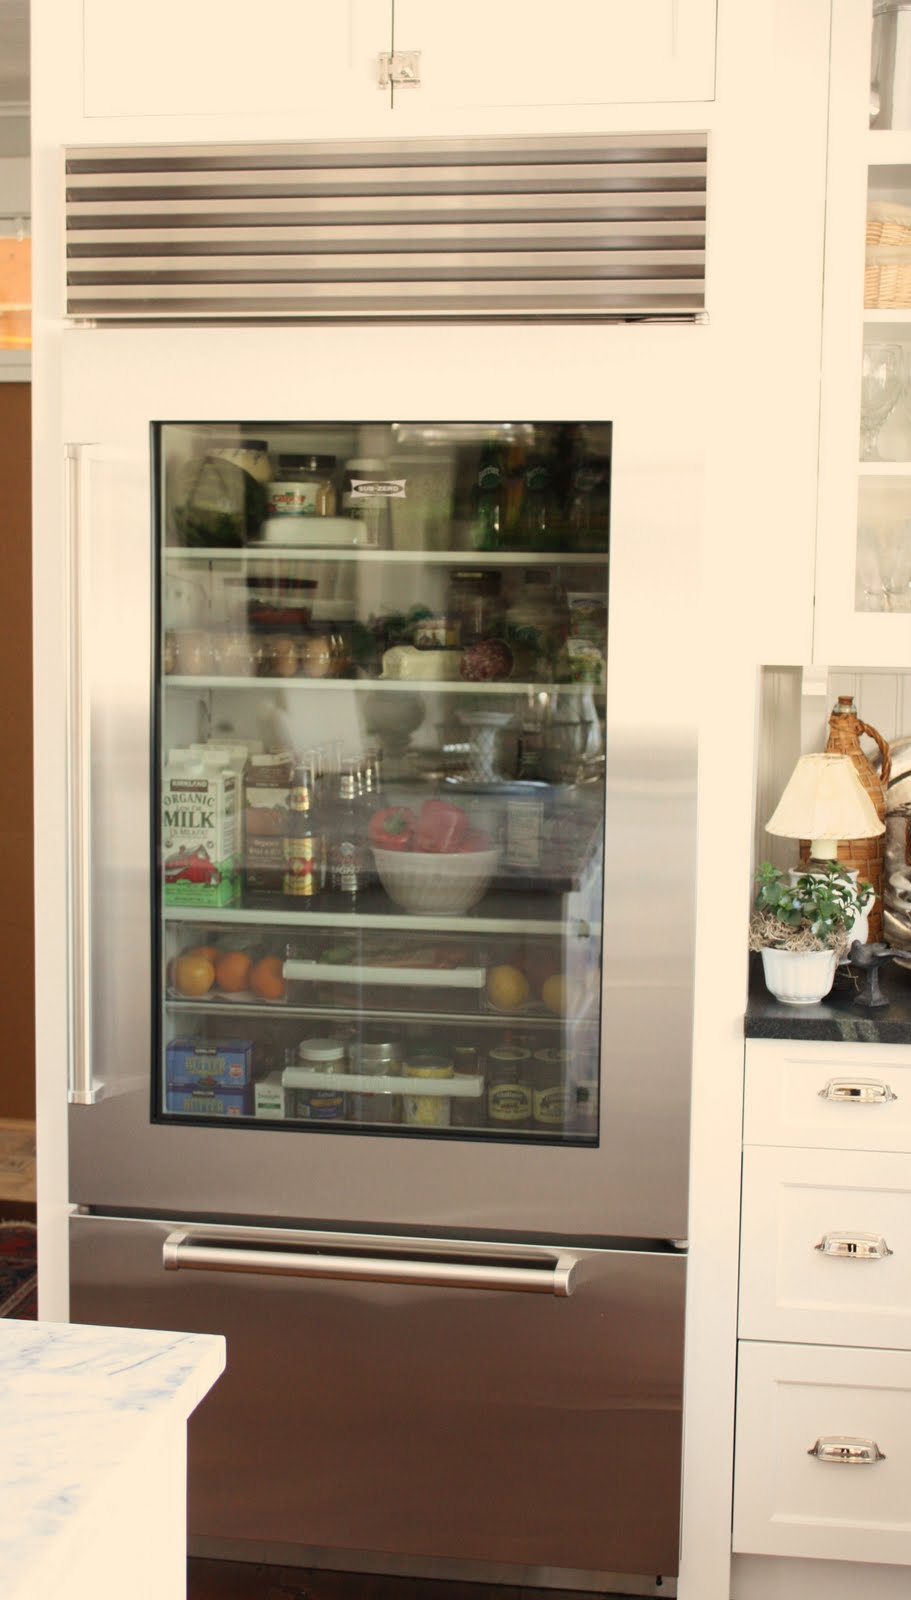 Good The Glass Door Refrigerator